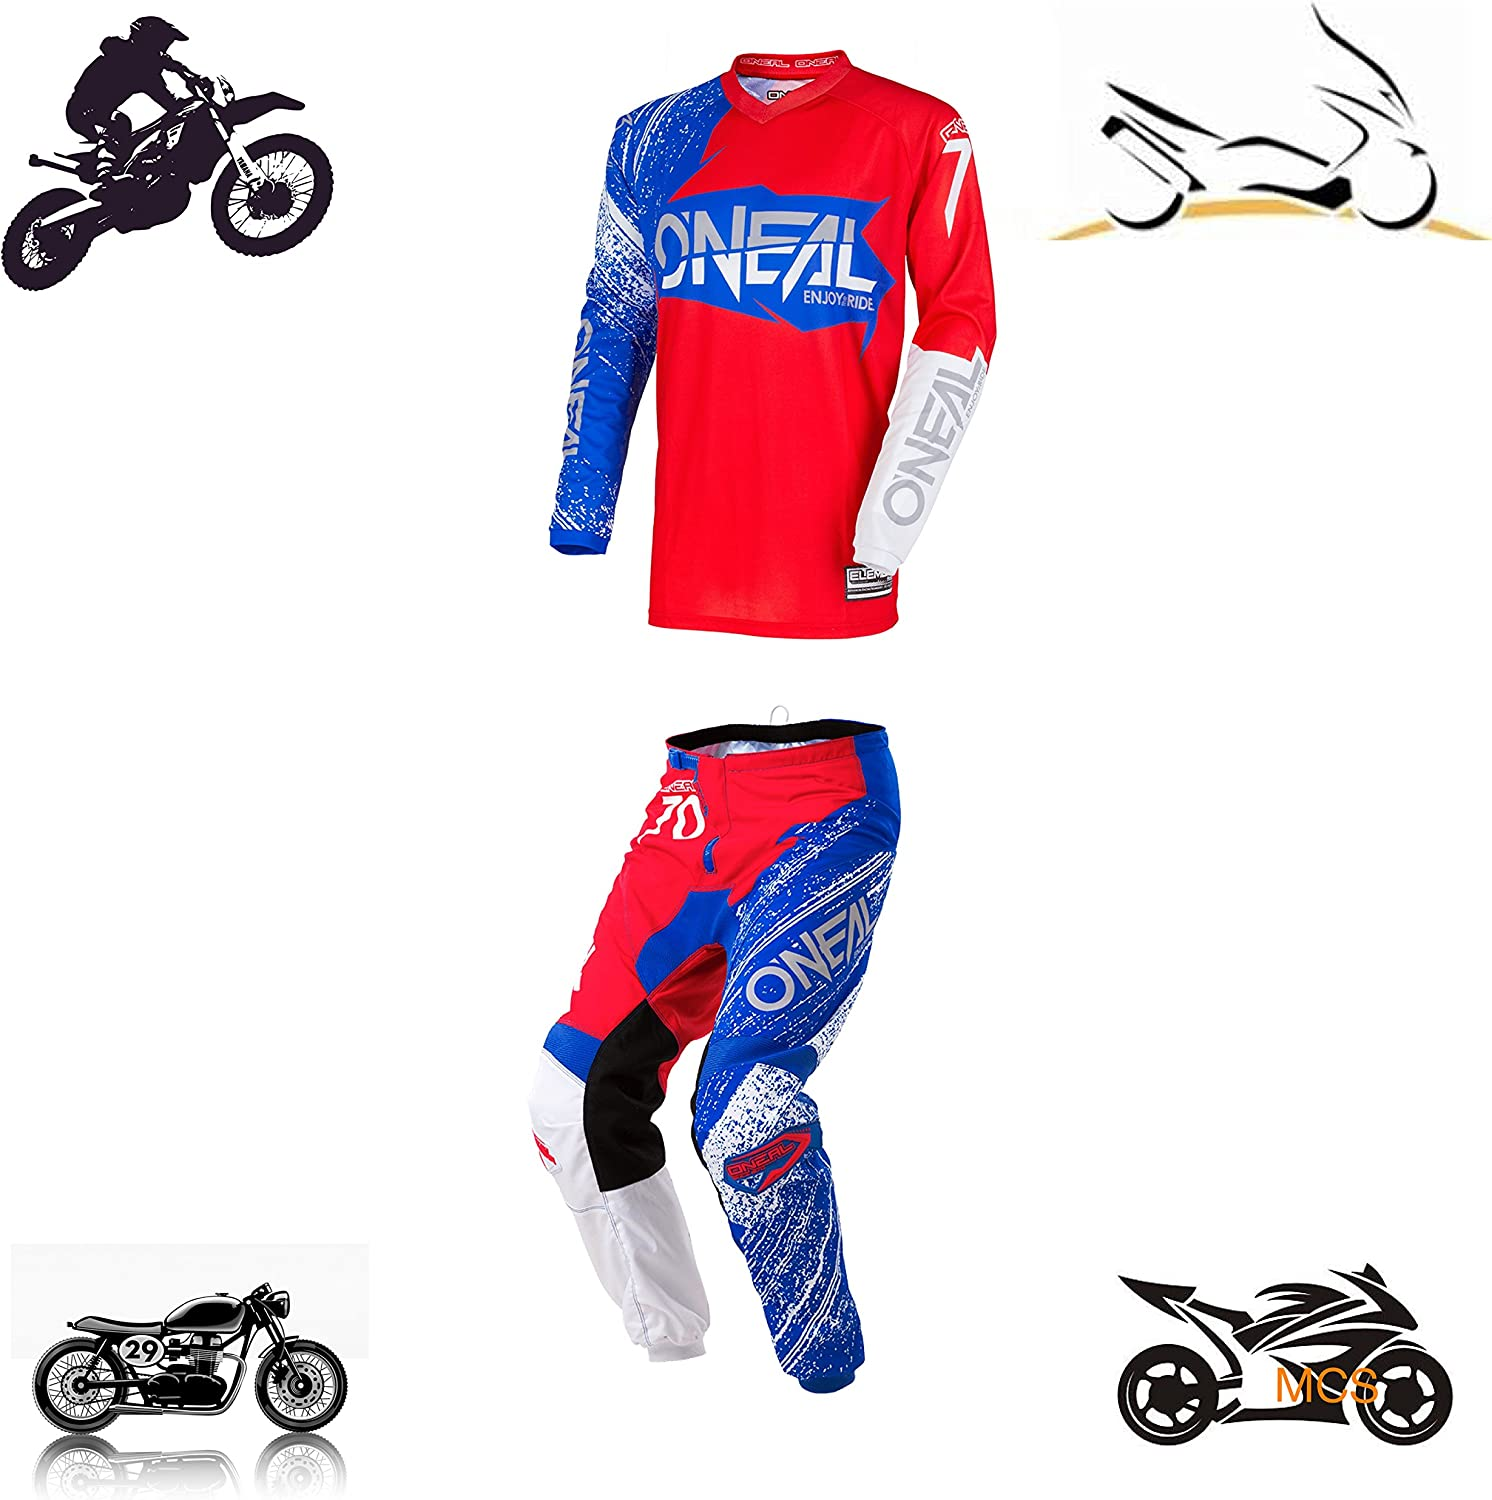 Pantal/ón Camiseta Oneal Talla 44S bornout Rojo Blue Flou Cross Enduro Quad